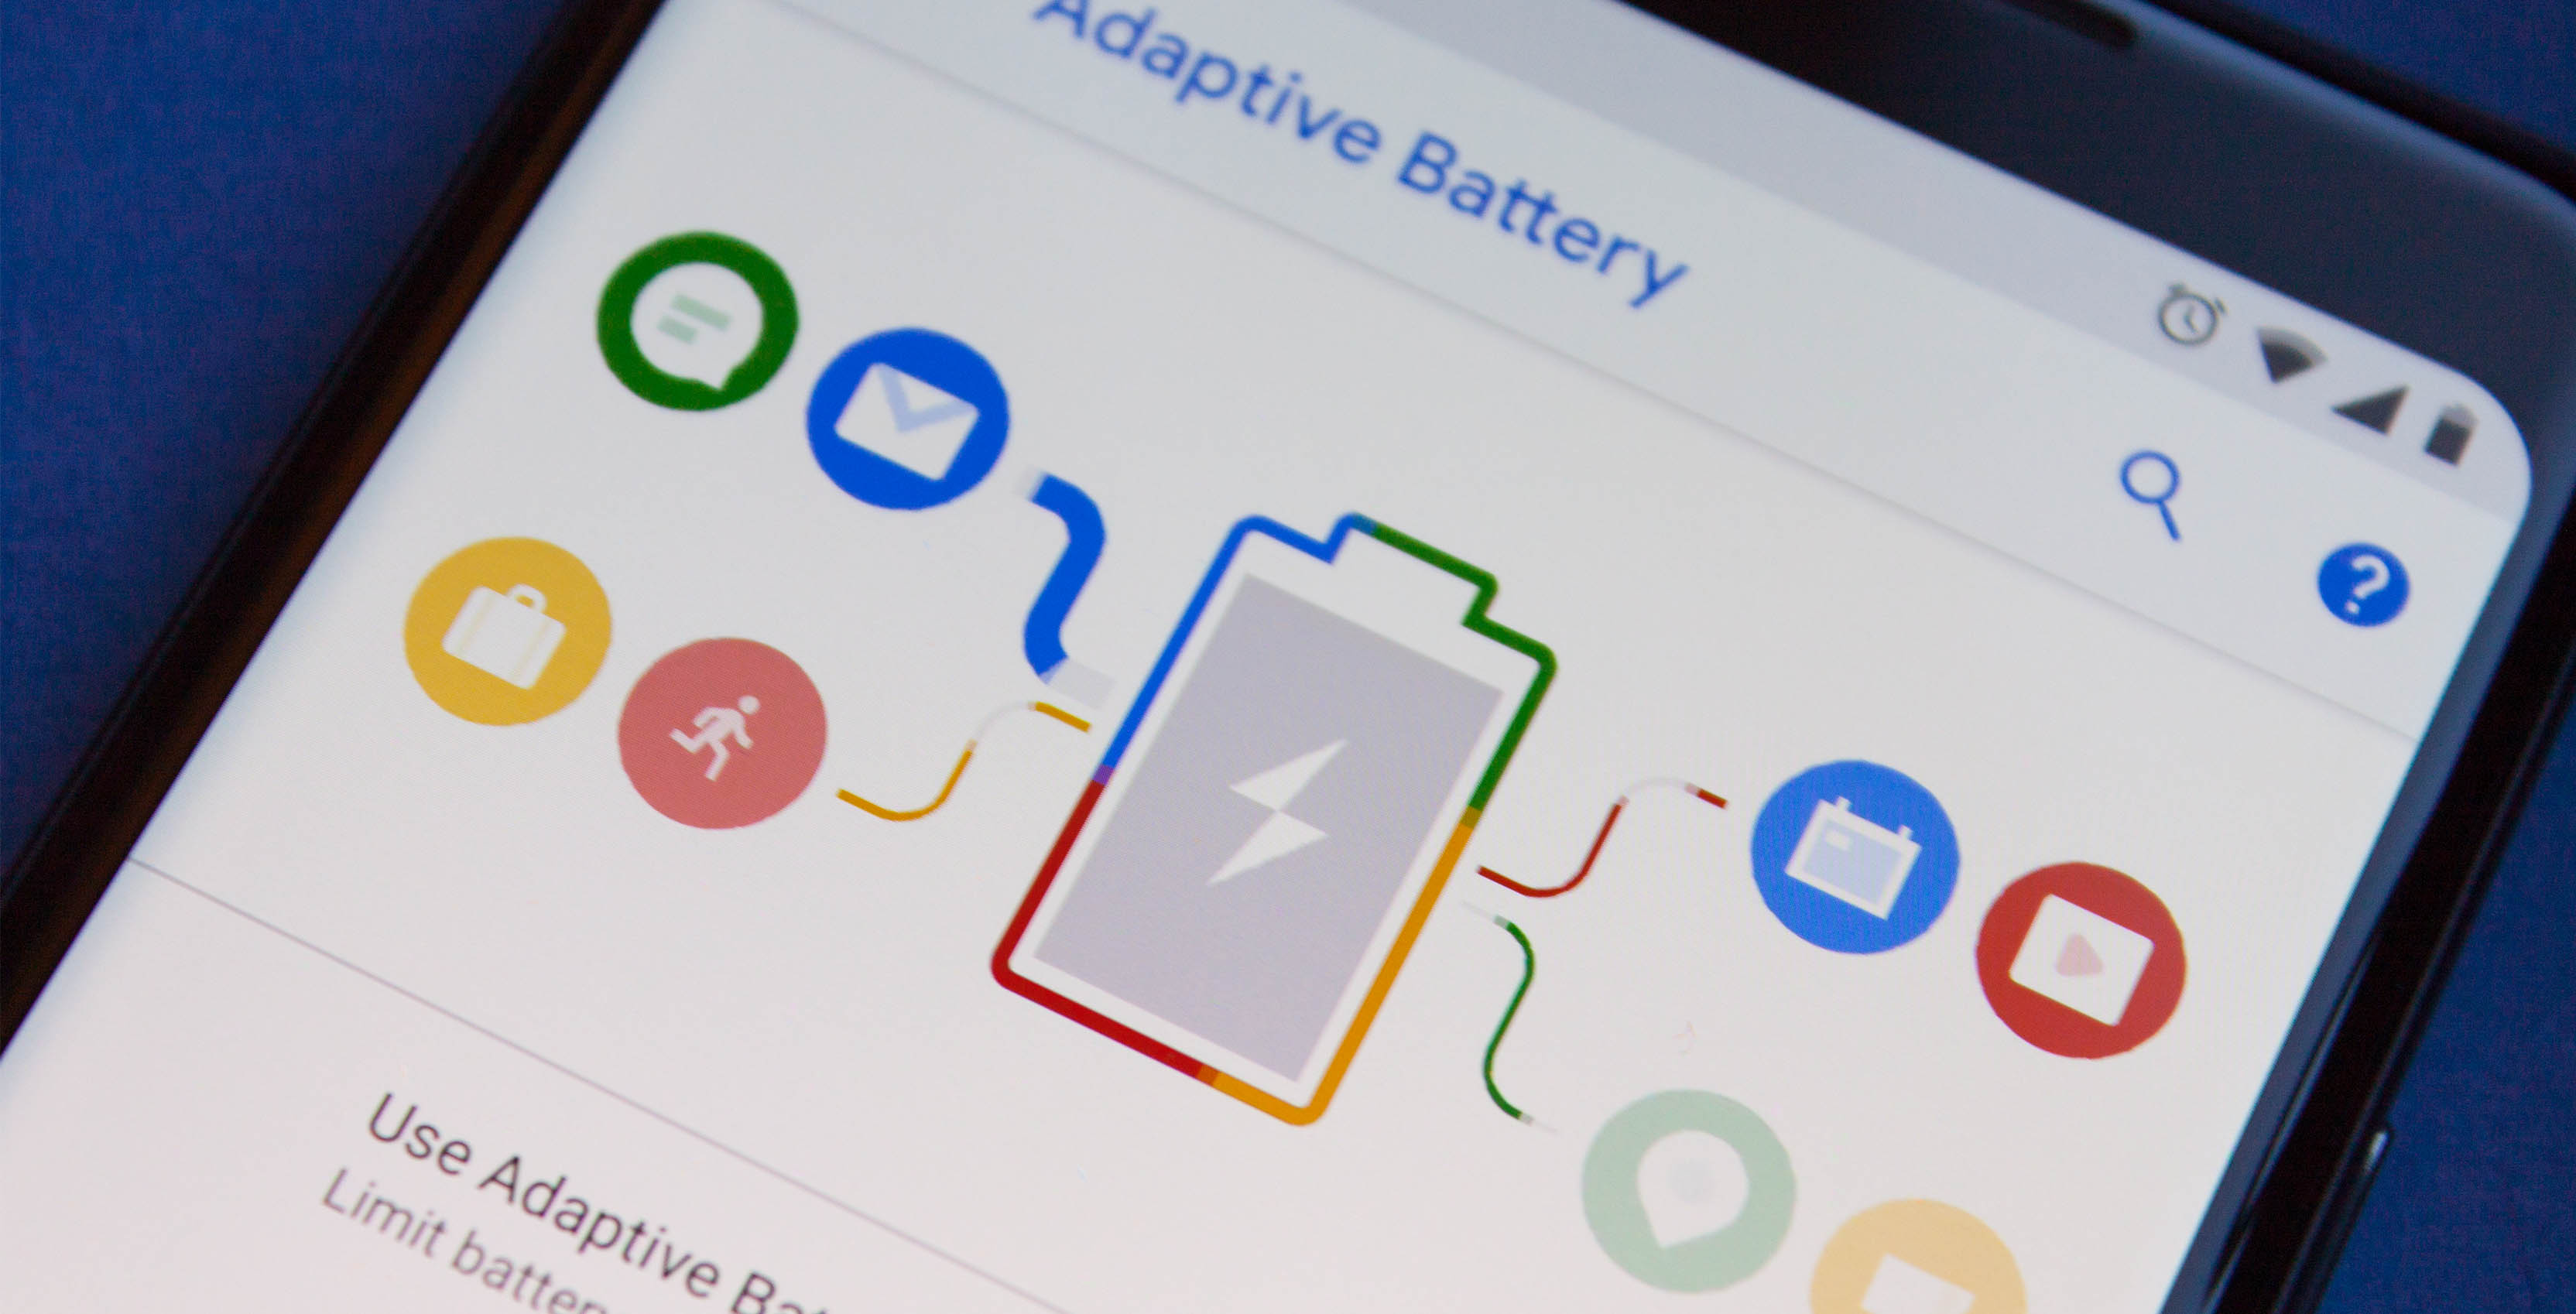 Adaptive Battery on Android P